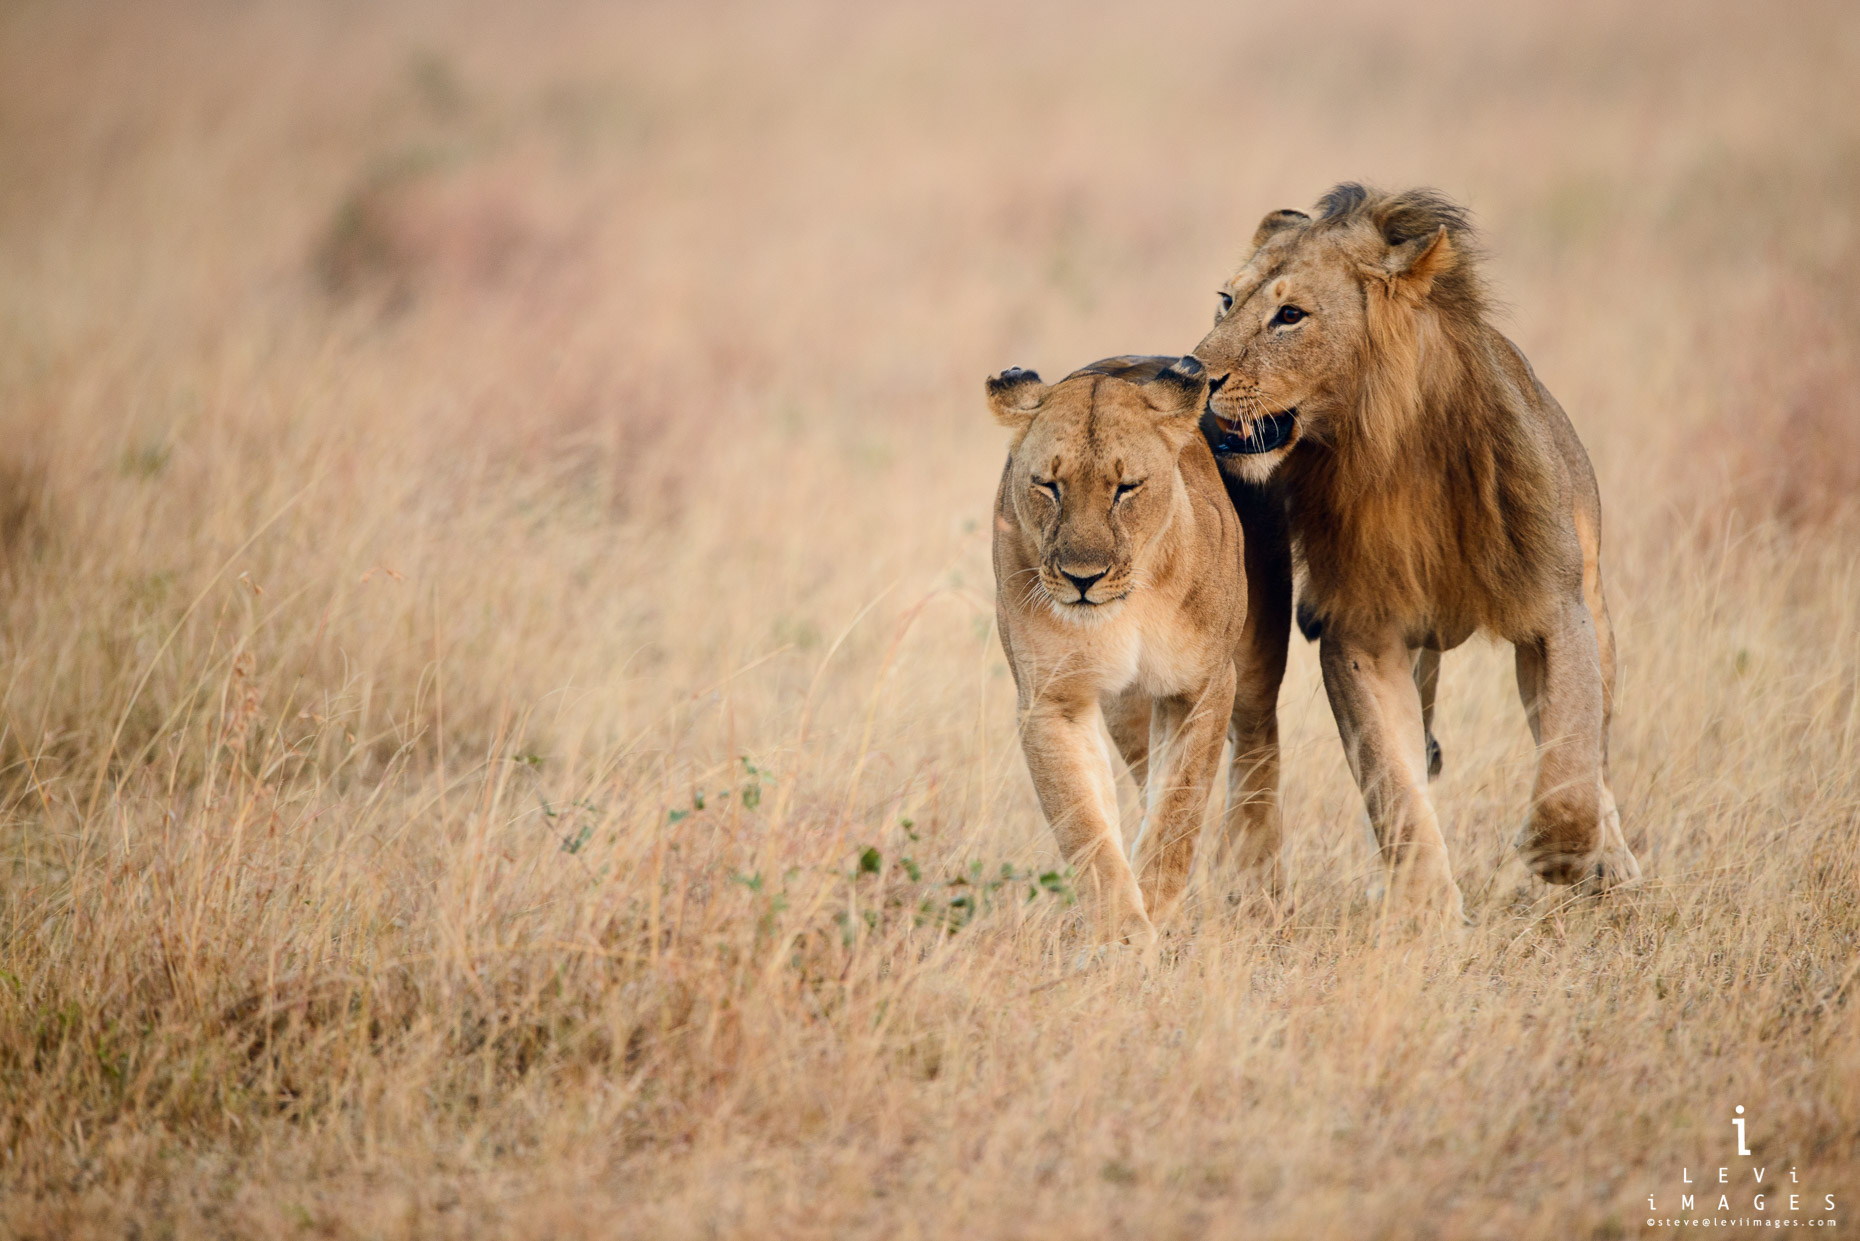 Lion (Panthera leo) courtship. Serengeti plains, Africa